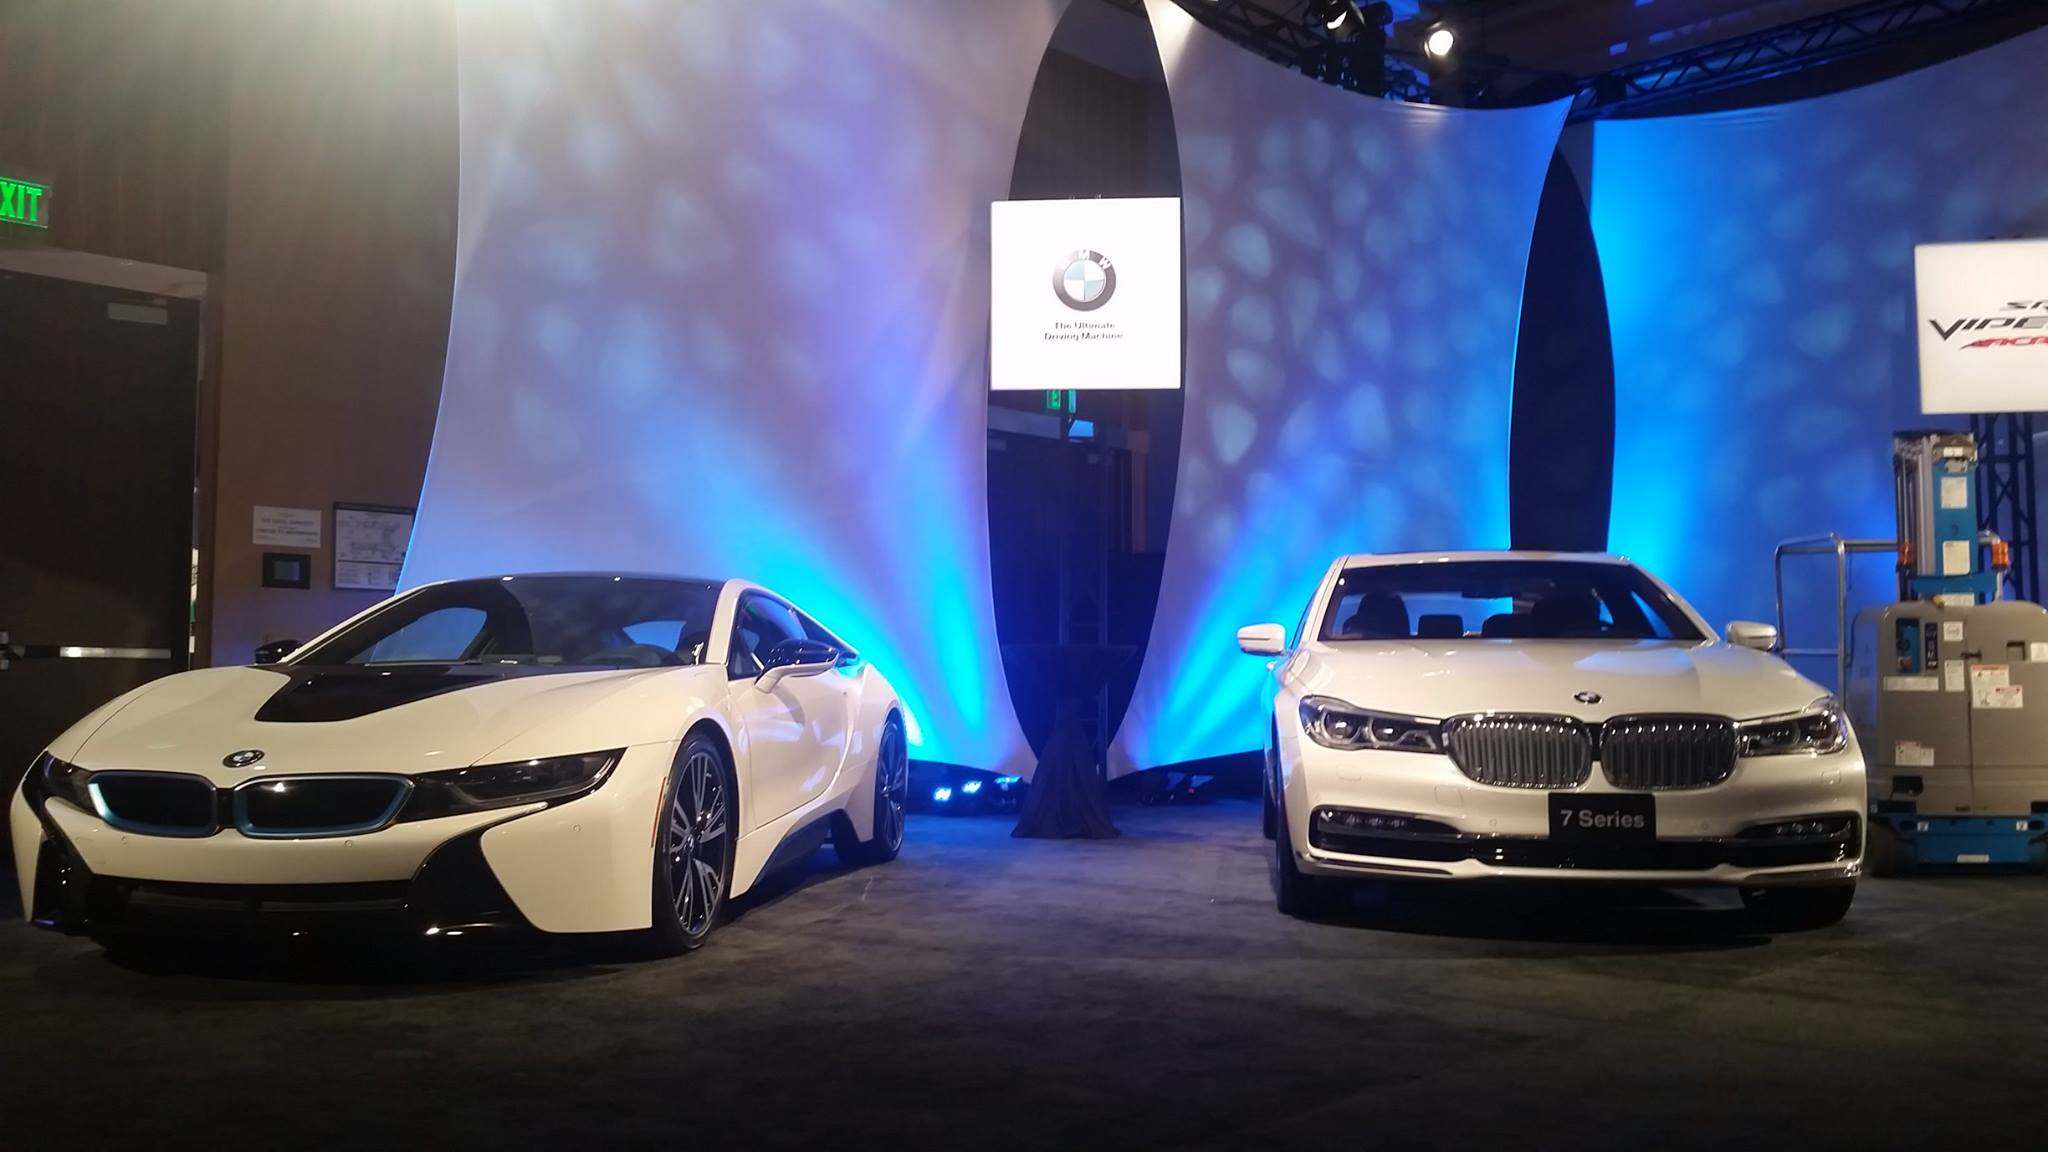 BMW - i8 - BMW 7serie - The Gallery - event - NAIAS 2016